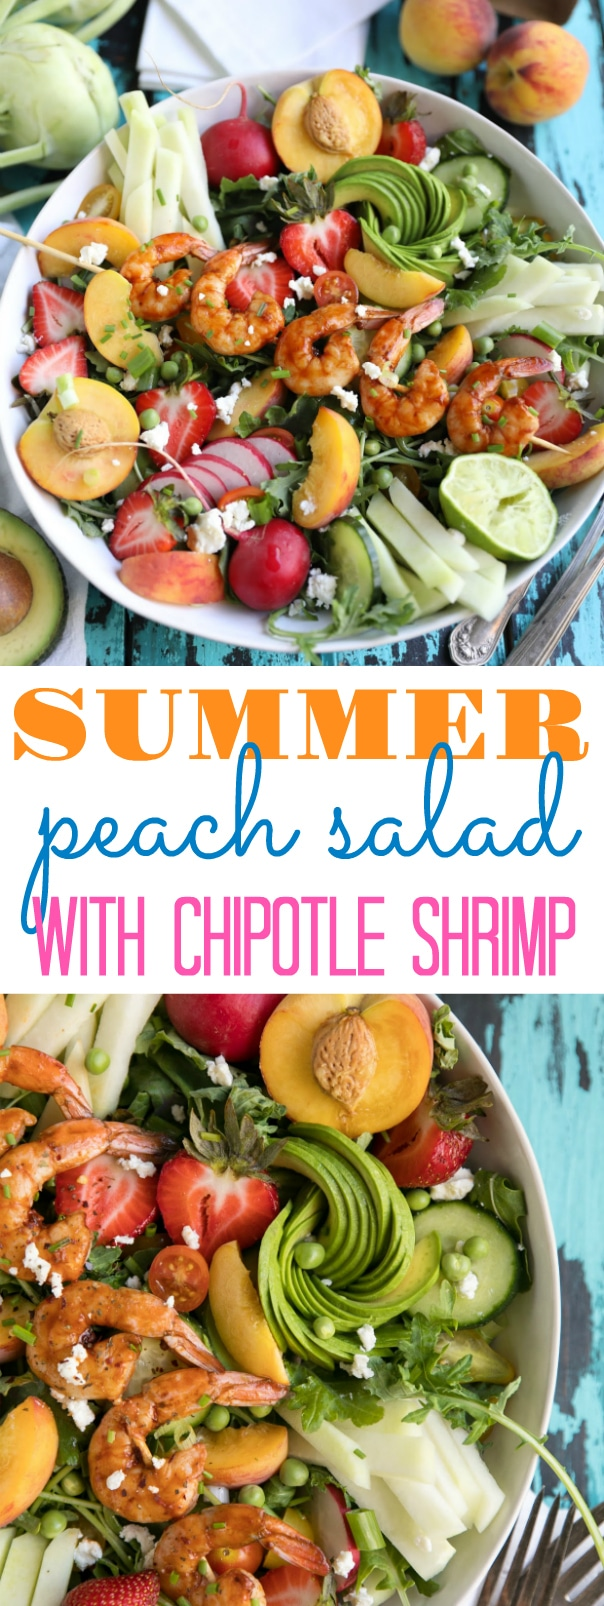 Peach and Kohlrabi Summer Salad with Chipotle Shrimp via @theforkedspoon #salad #chipotleshrimp #easyrecipe #summersalad #peaches #fruitsalad #healthyrecipe #cleaneating | For this recipe and more visit, https://theforkedspoon.com/